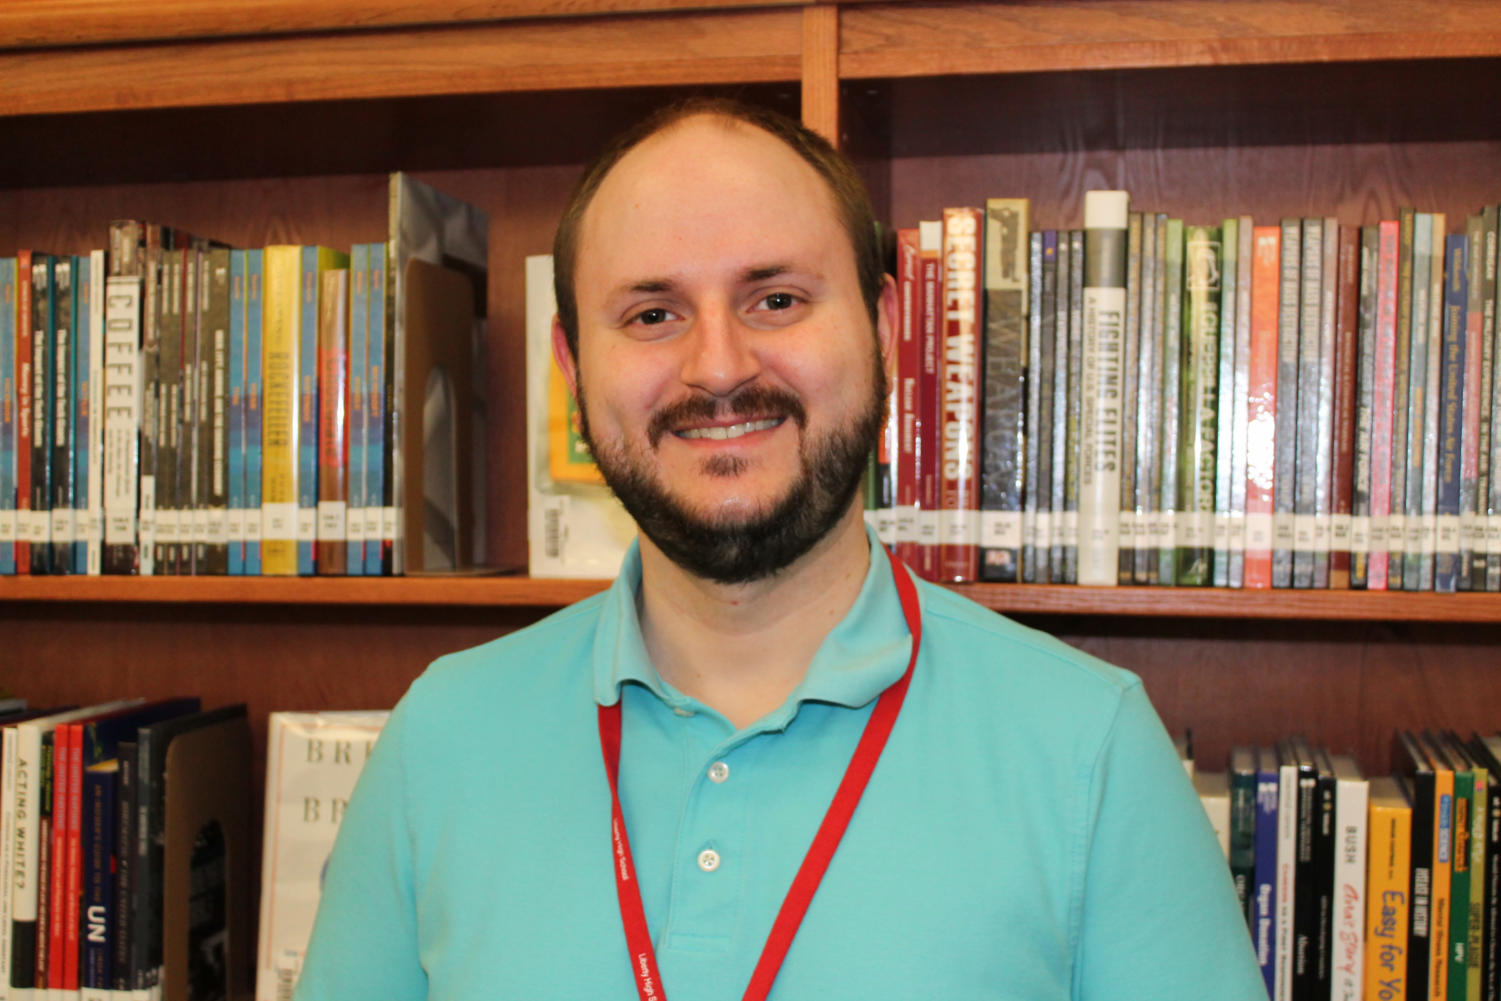 Mr. Eversole is one of the English teachers at Liberty.